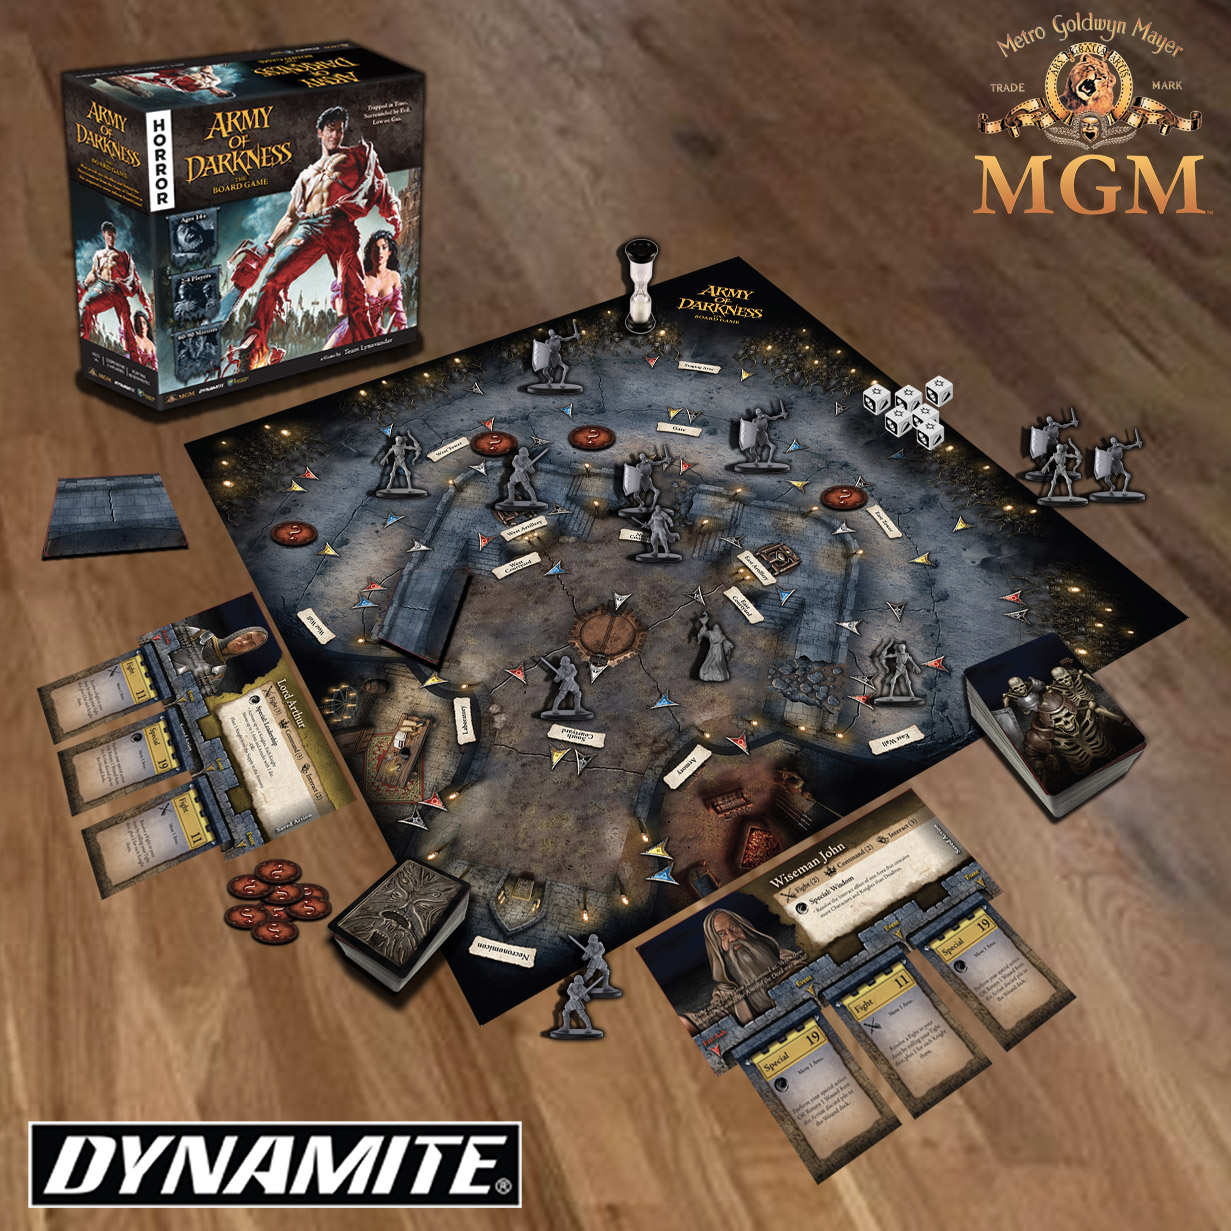 Army of Darkness - board game Dynamite